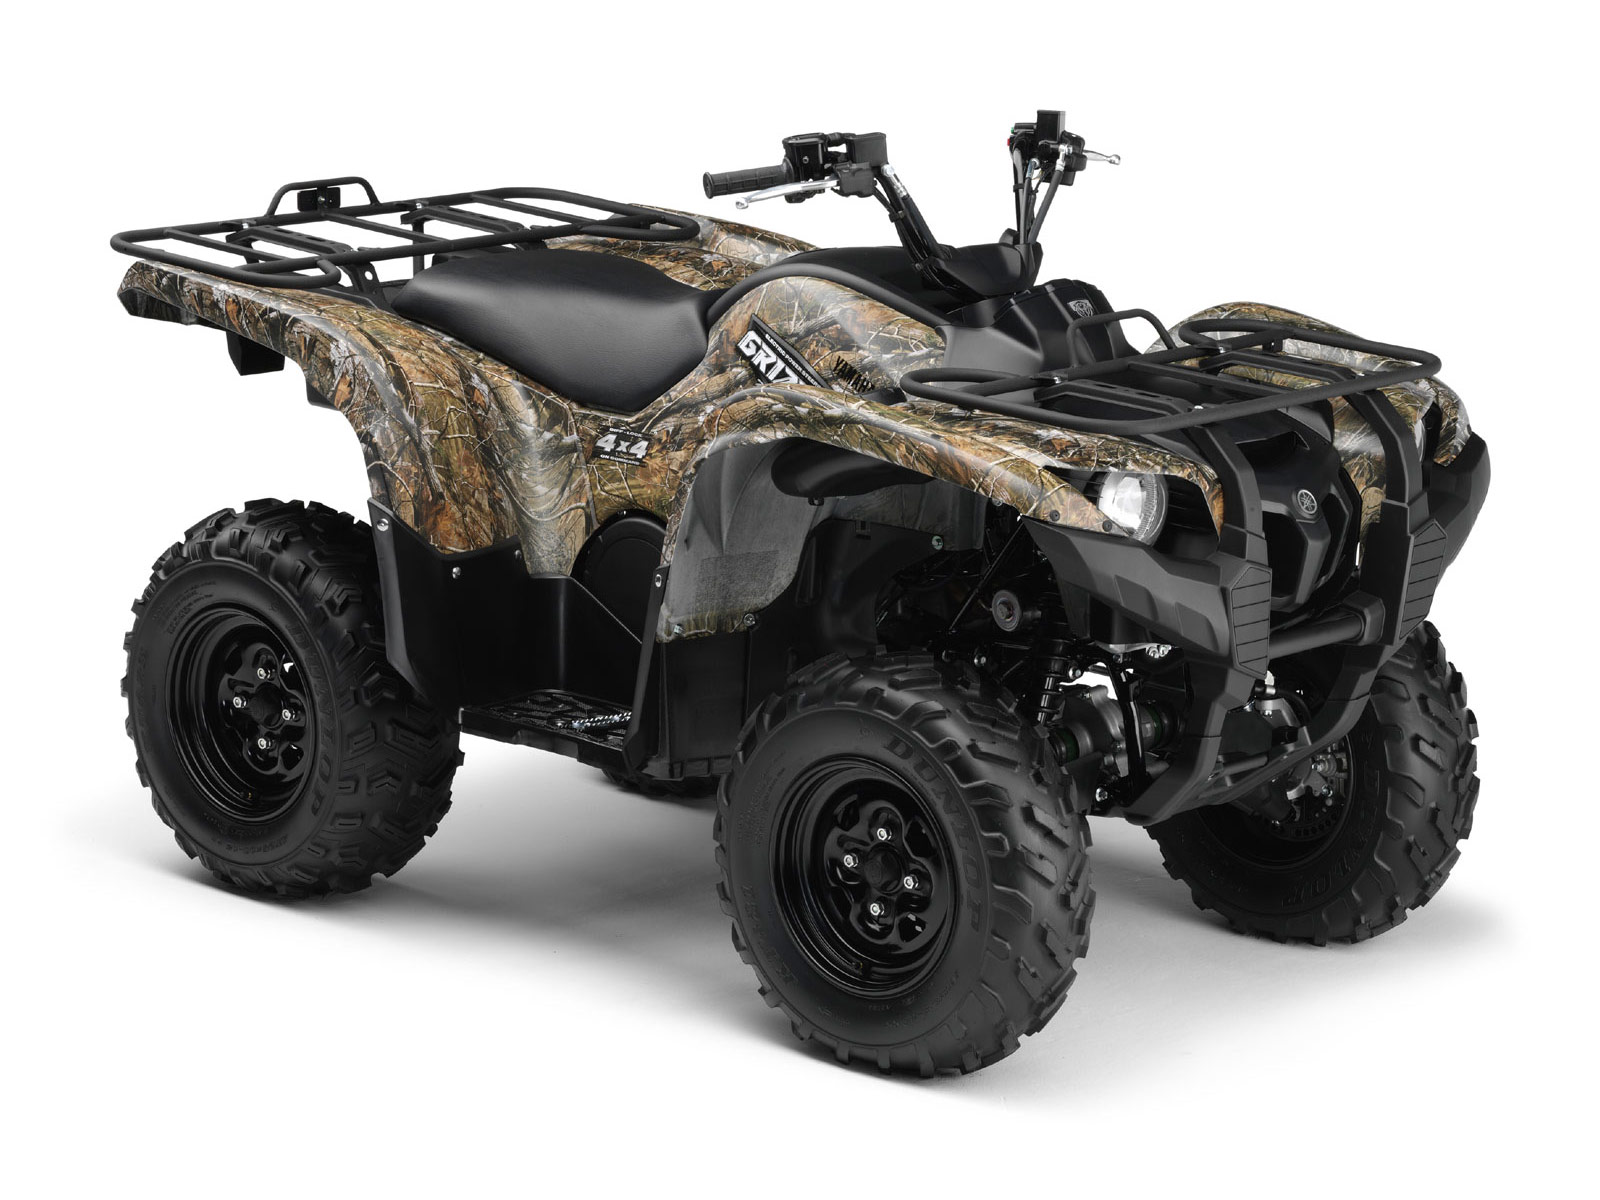 2009 yamaha grizzly 700 fi camo ap hd. Black Bedroom Furniture Sets. Home Design Ideas